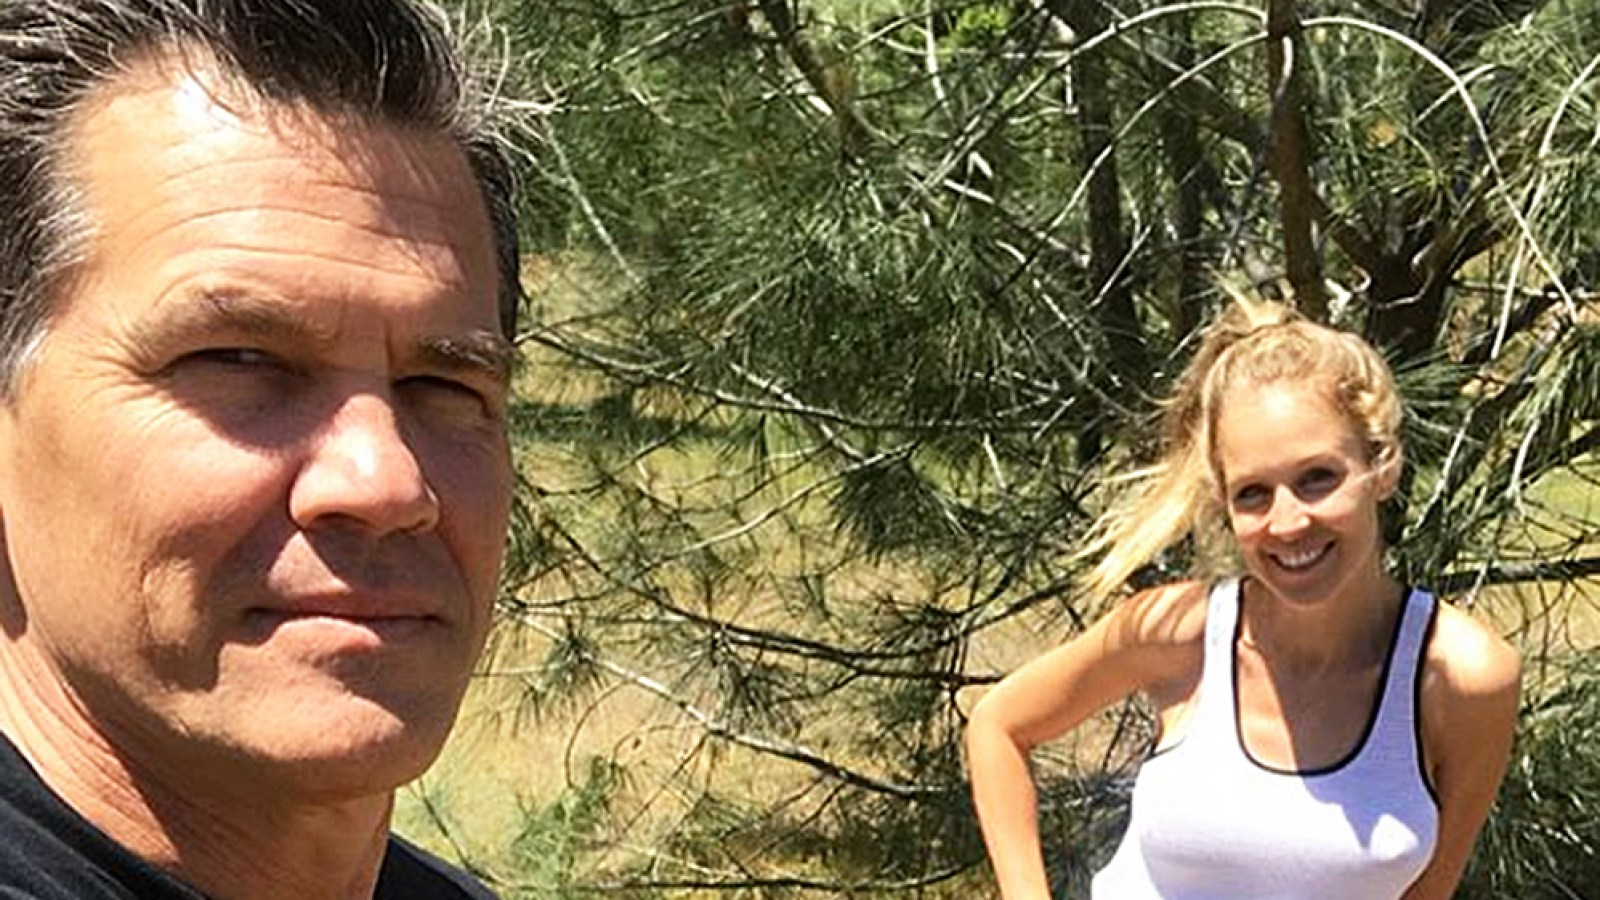 fc6a37e62 Josh Brolin's Wife Kathryn Boyd Is Pregnant, Expecting Their First Child  Together